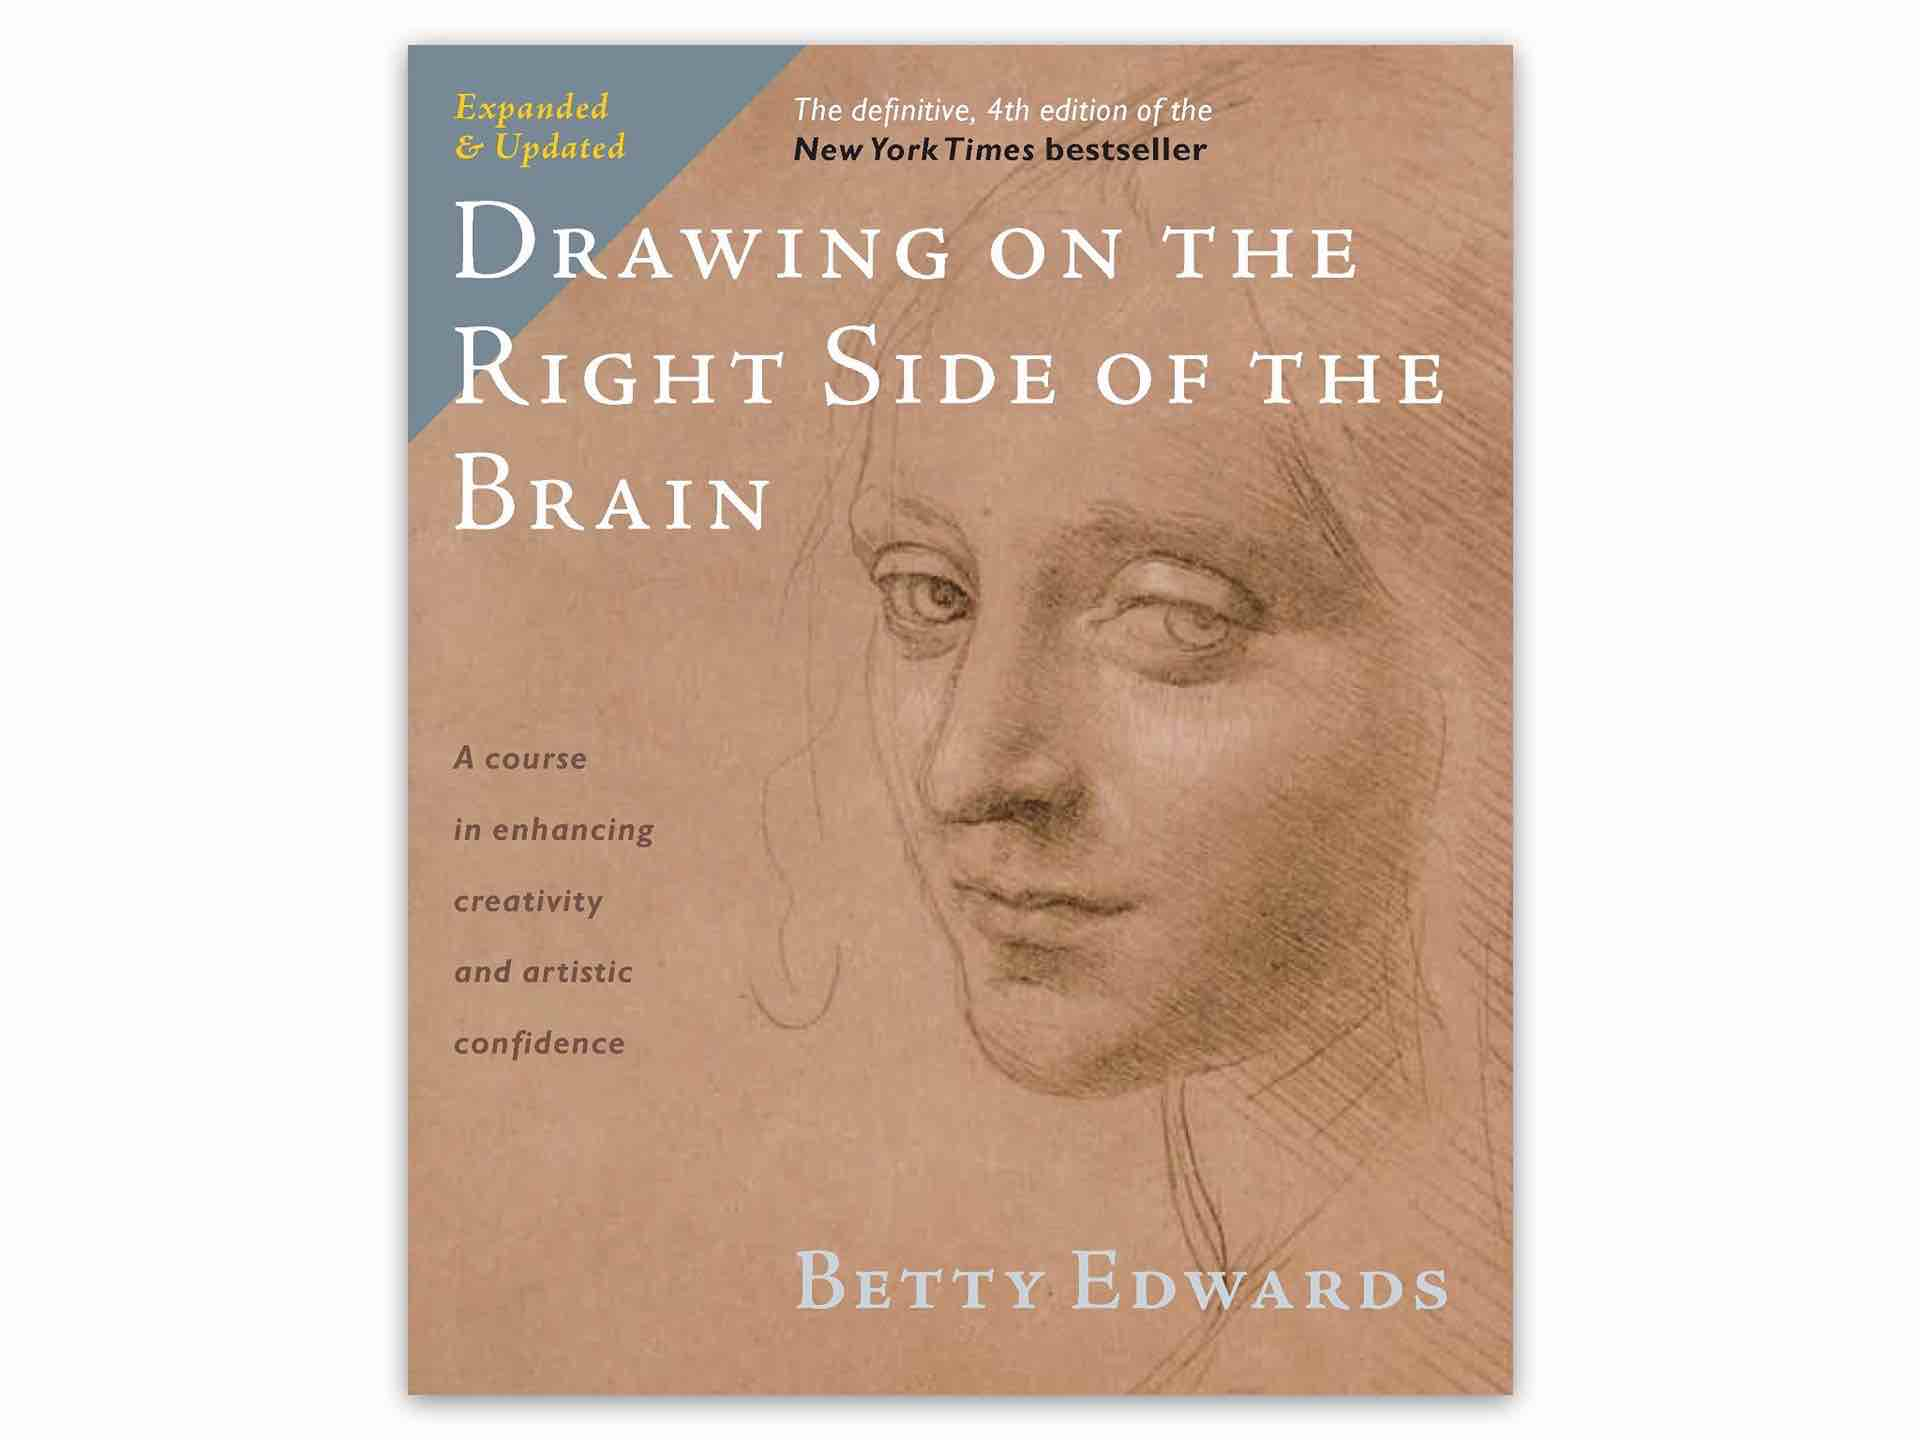 drawing-on-the-right-side-of-the-brain-4th-edition-by-betty-edwards